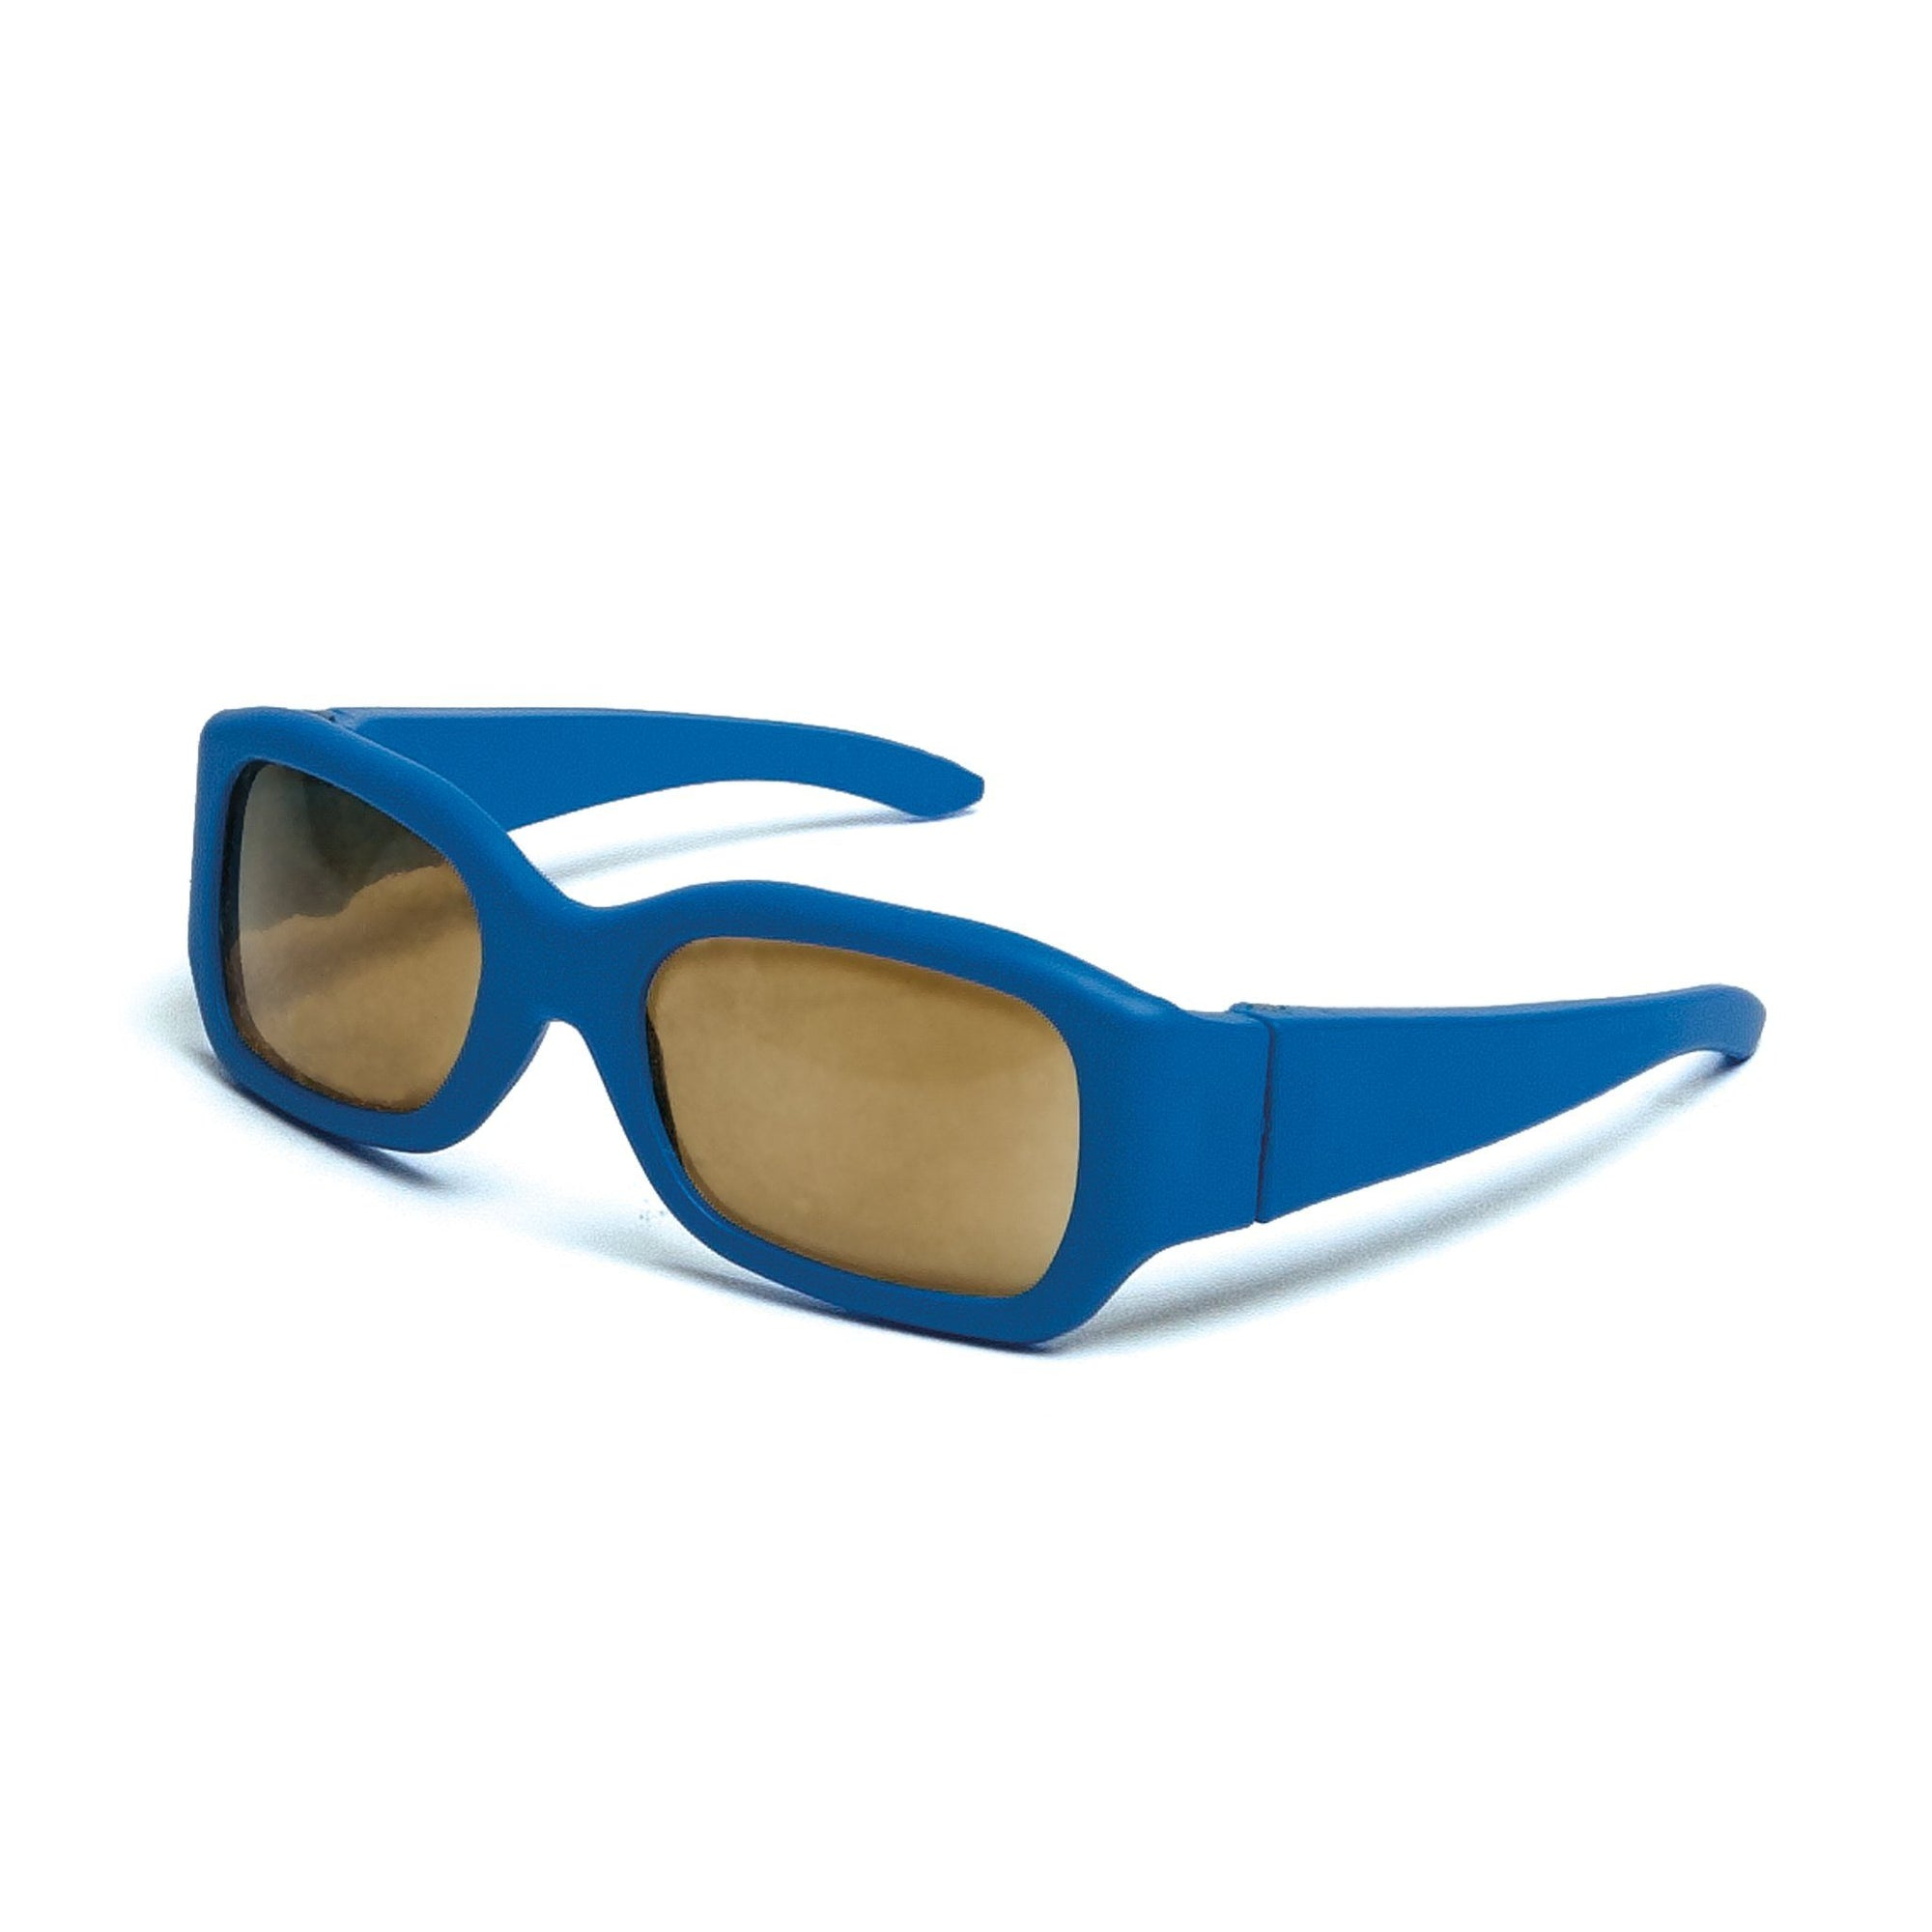 Blue sunglasses fit all 18 inch dolls